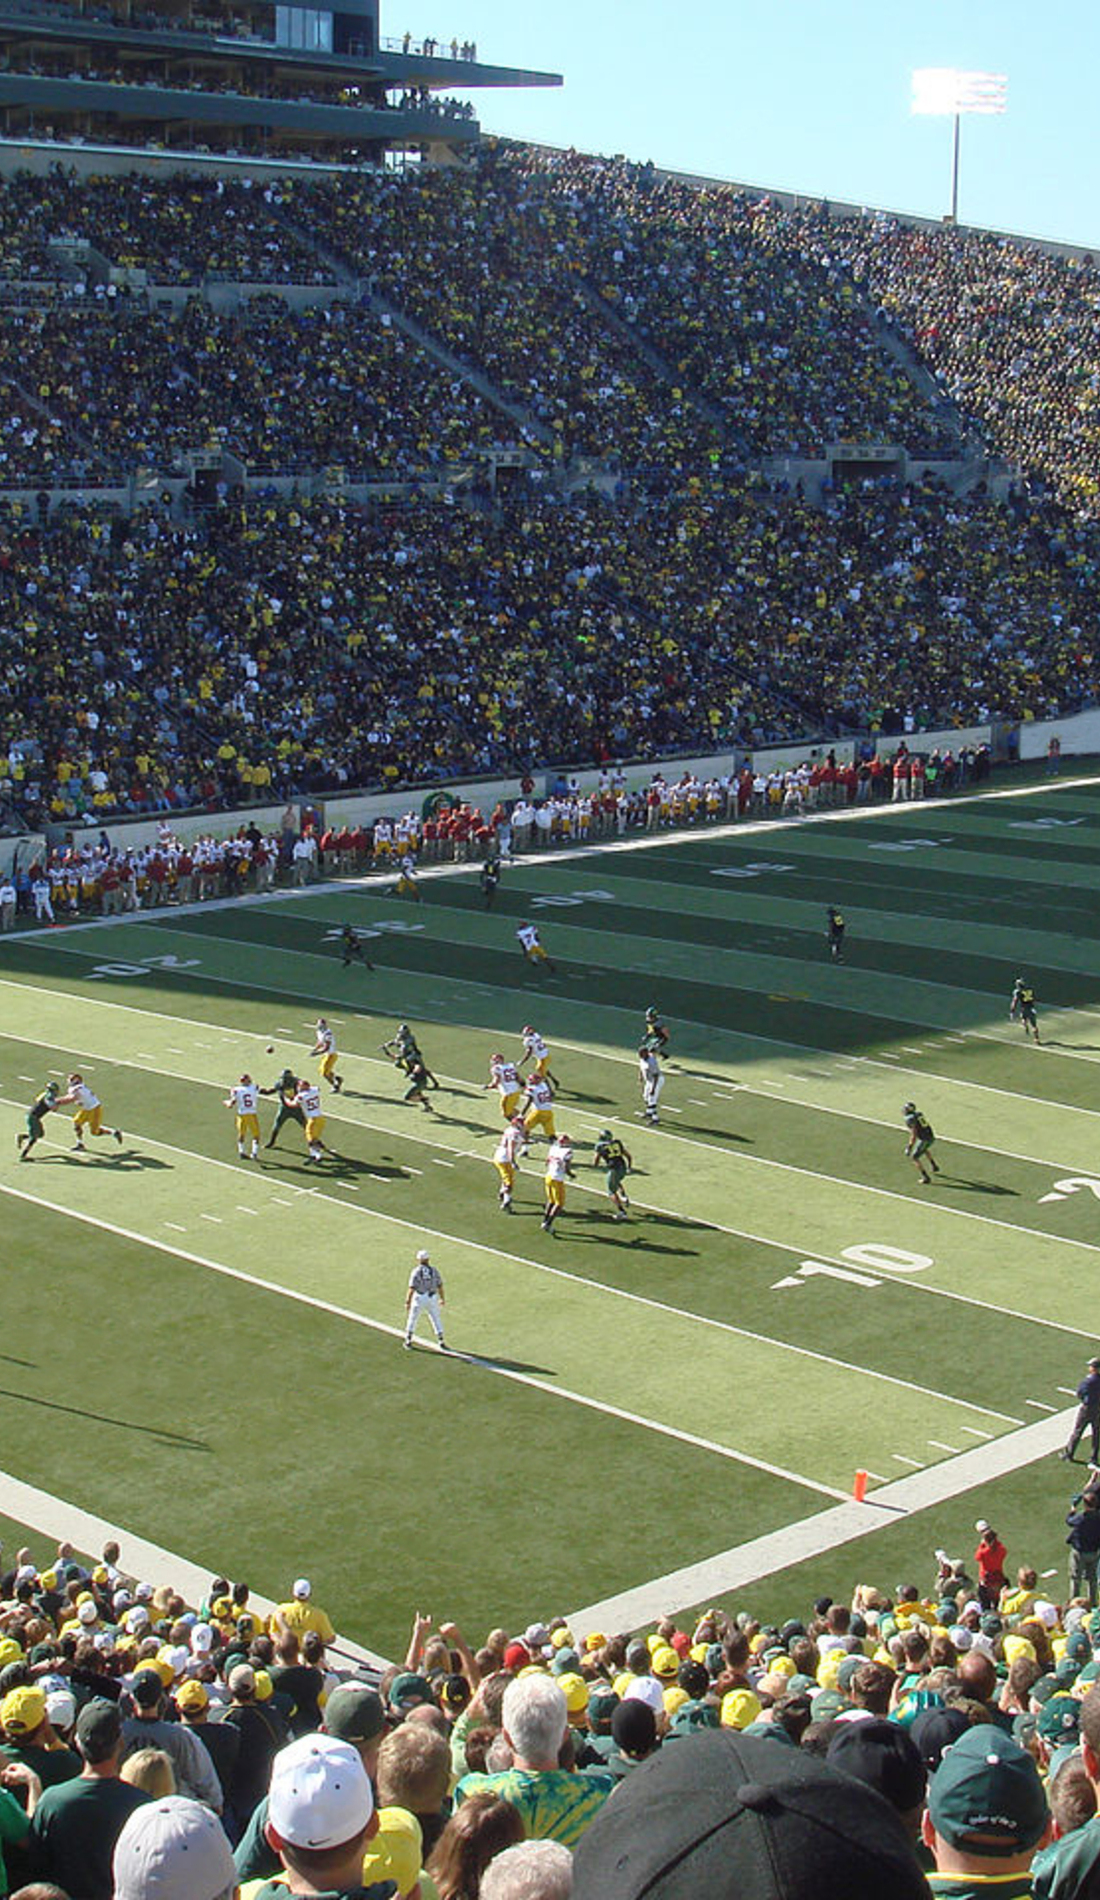 A Oregon Ducks Football live event